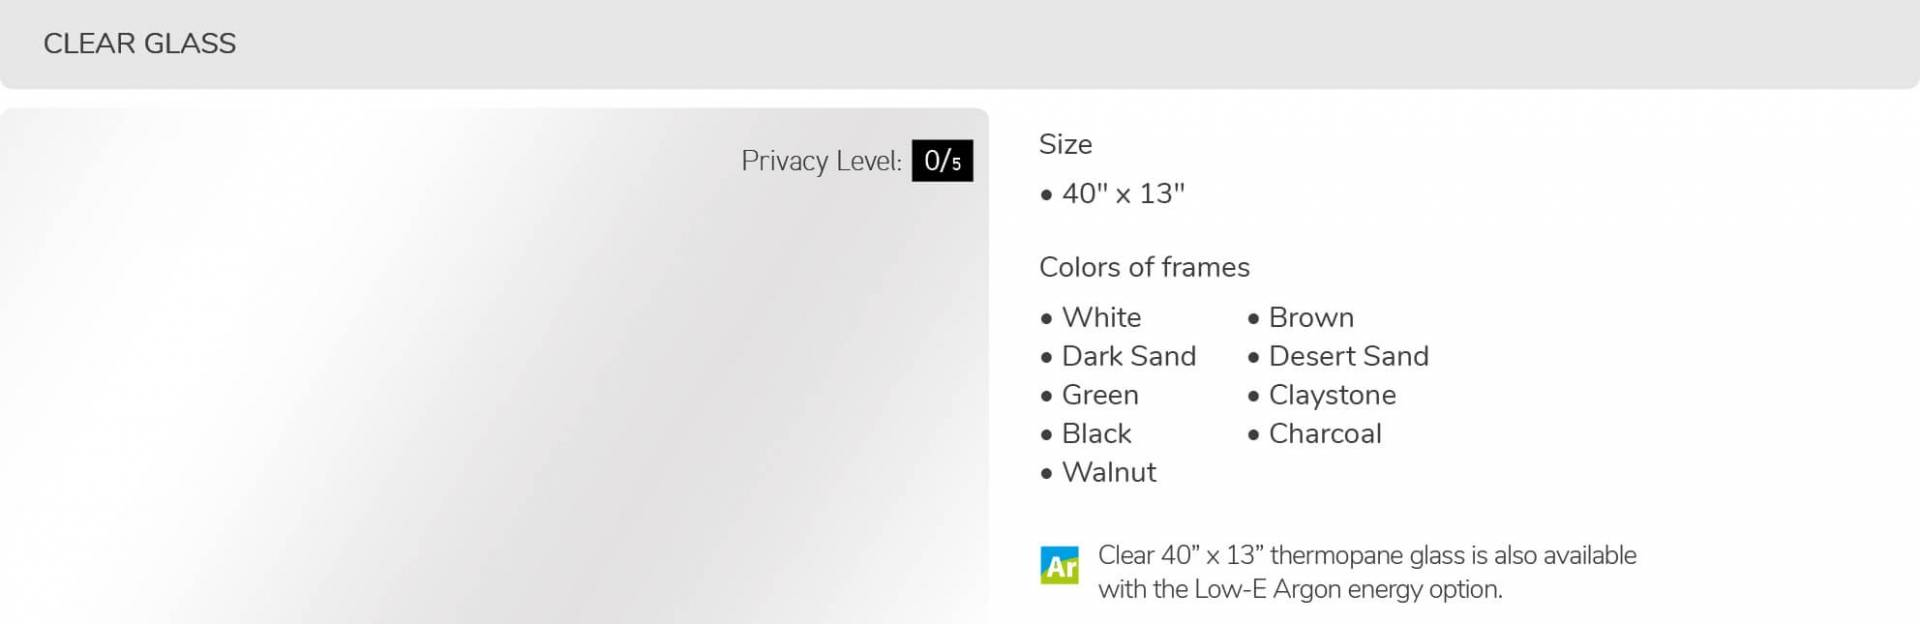 Clear glass, 40' x 13', available for door R-16